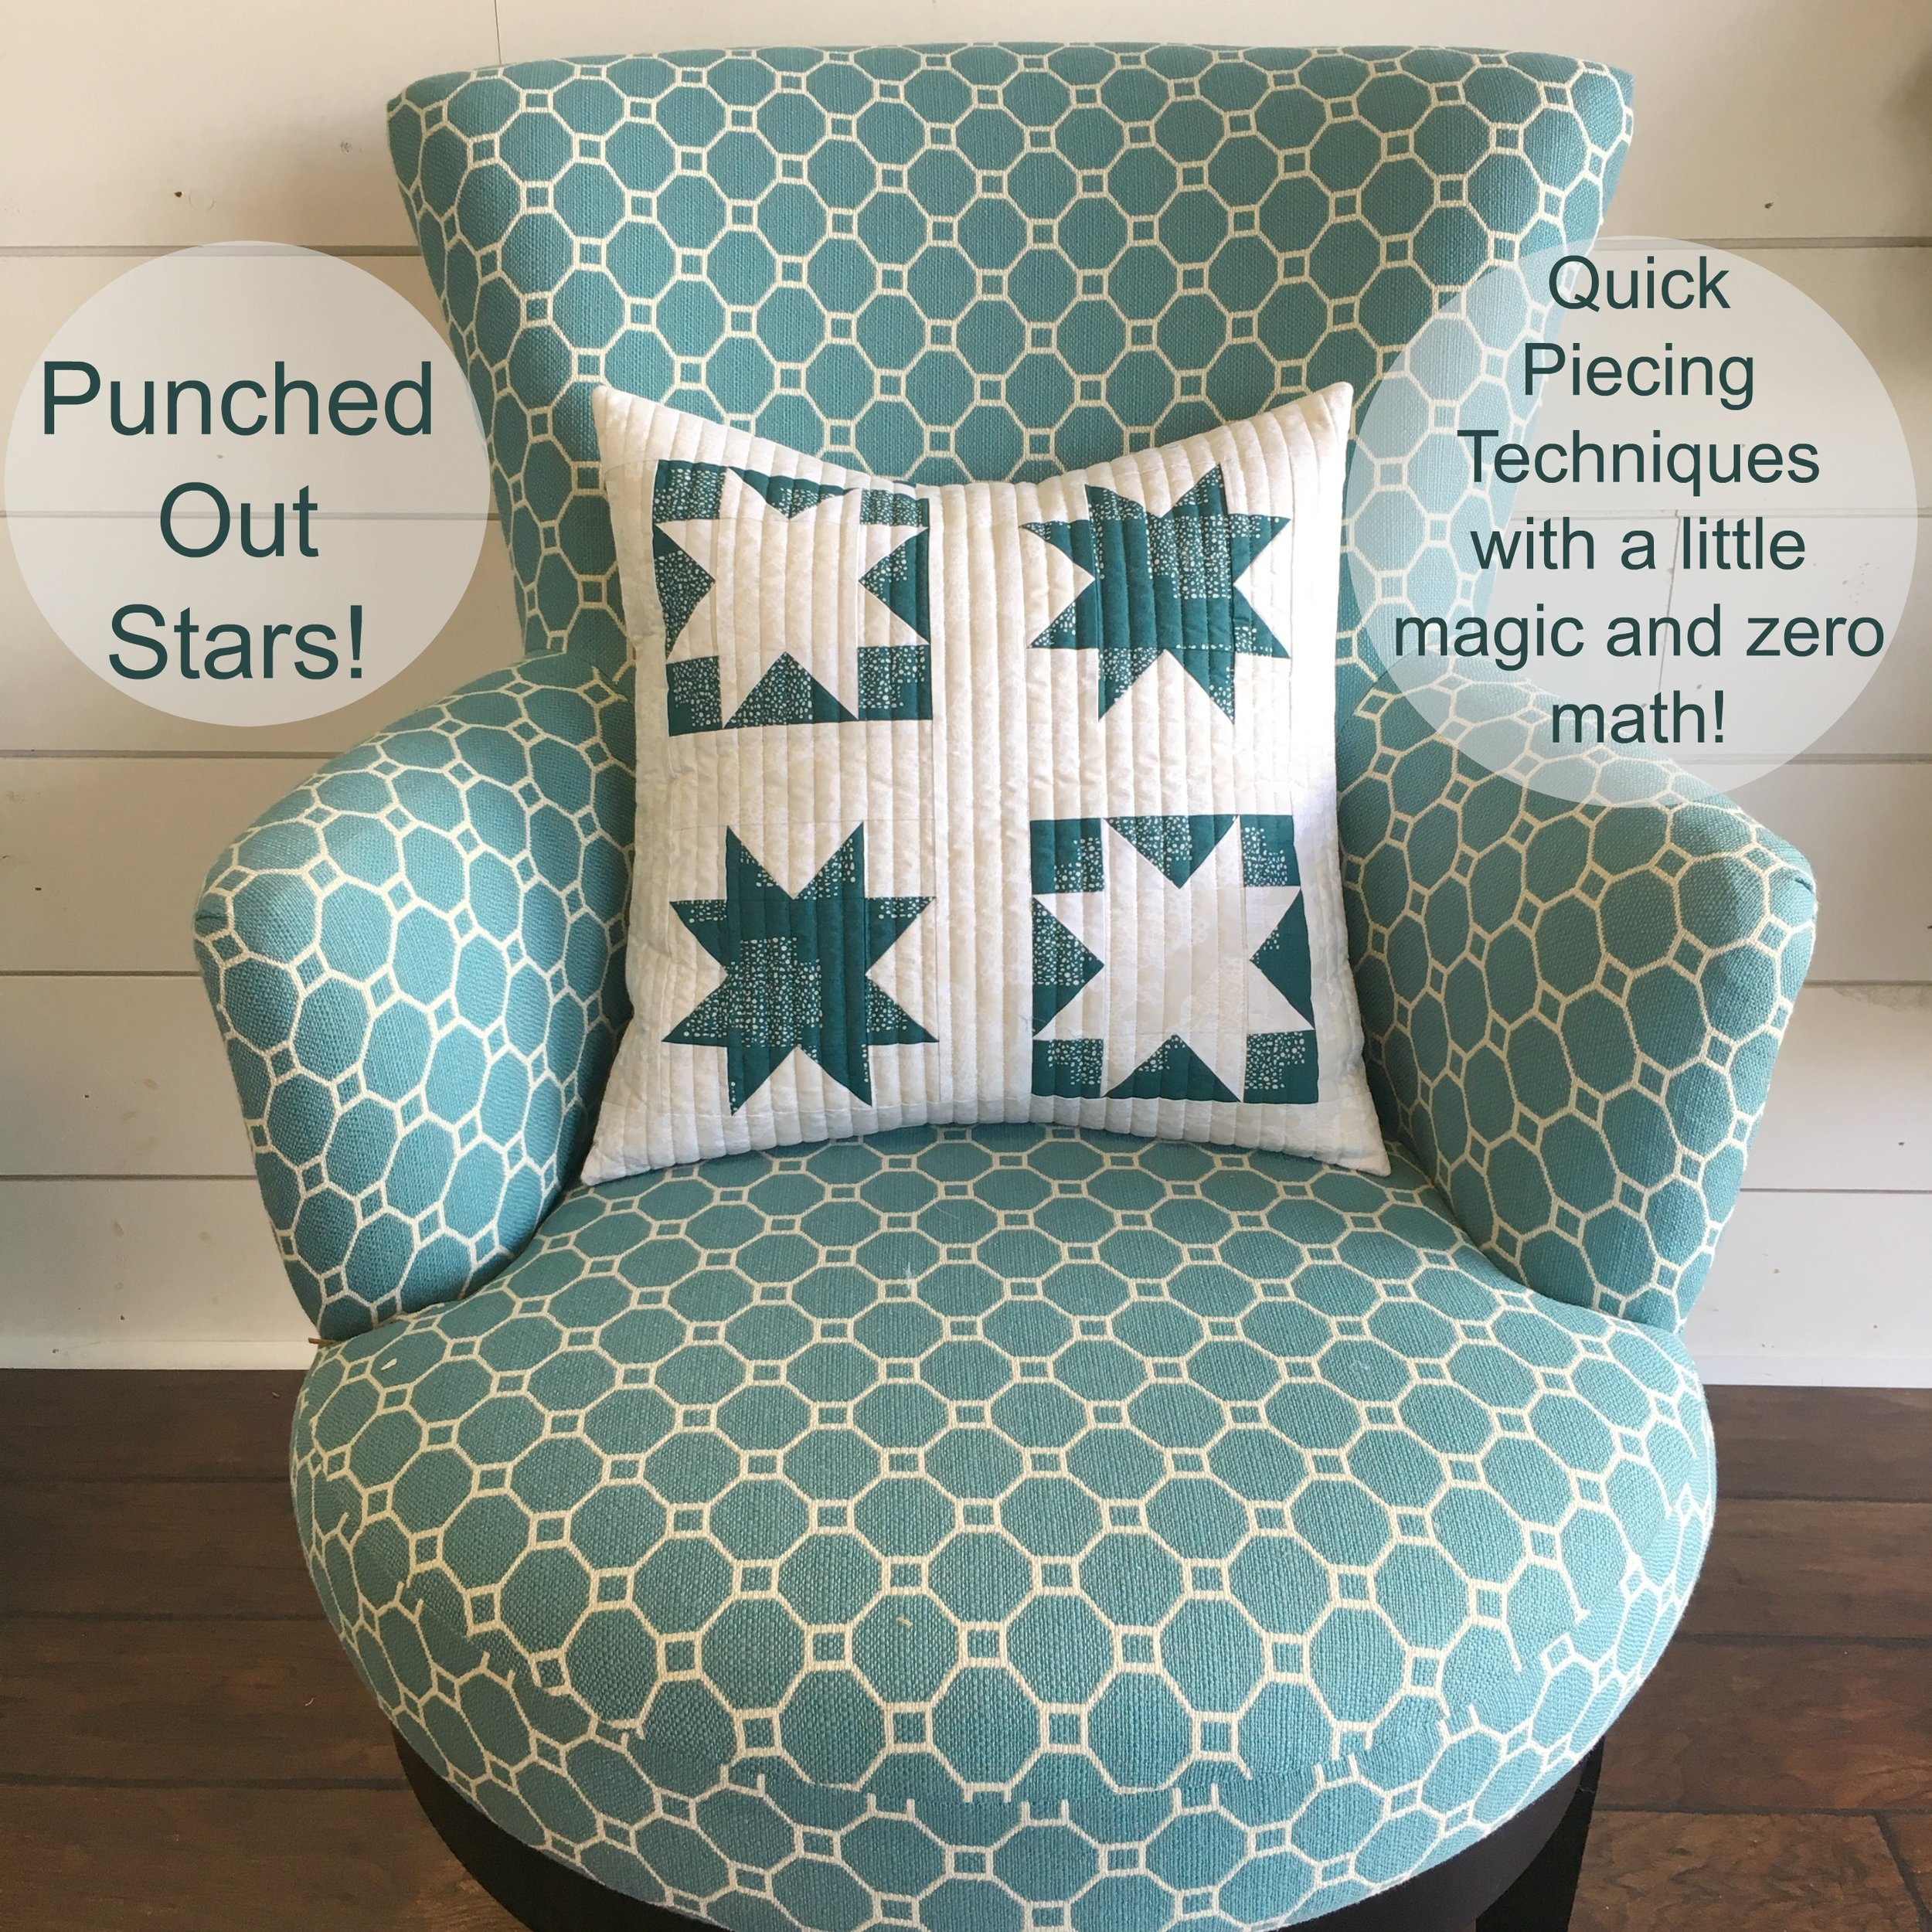 Punched Out Stars from September 2018 Maxie Mail Subscription Sewing Box.jpg